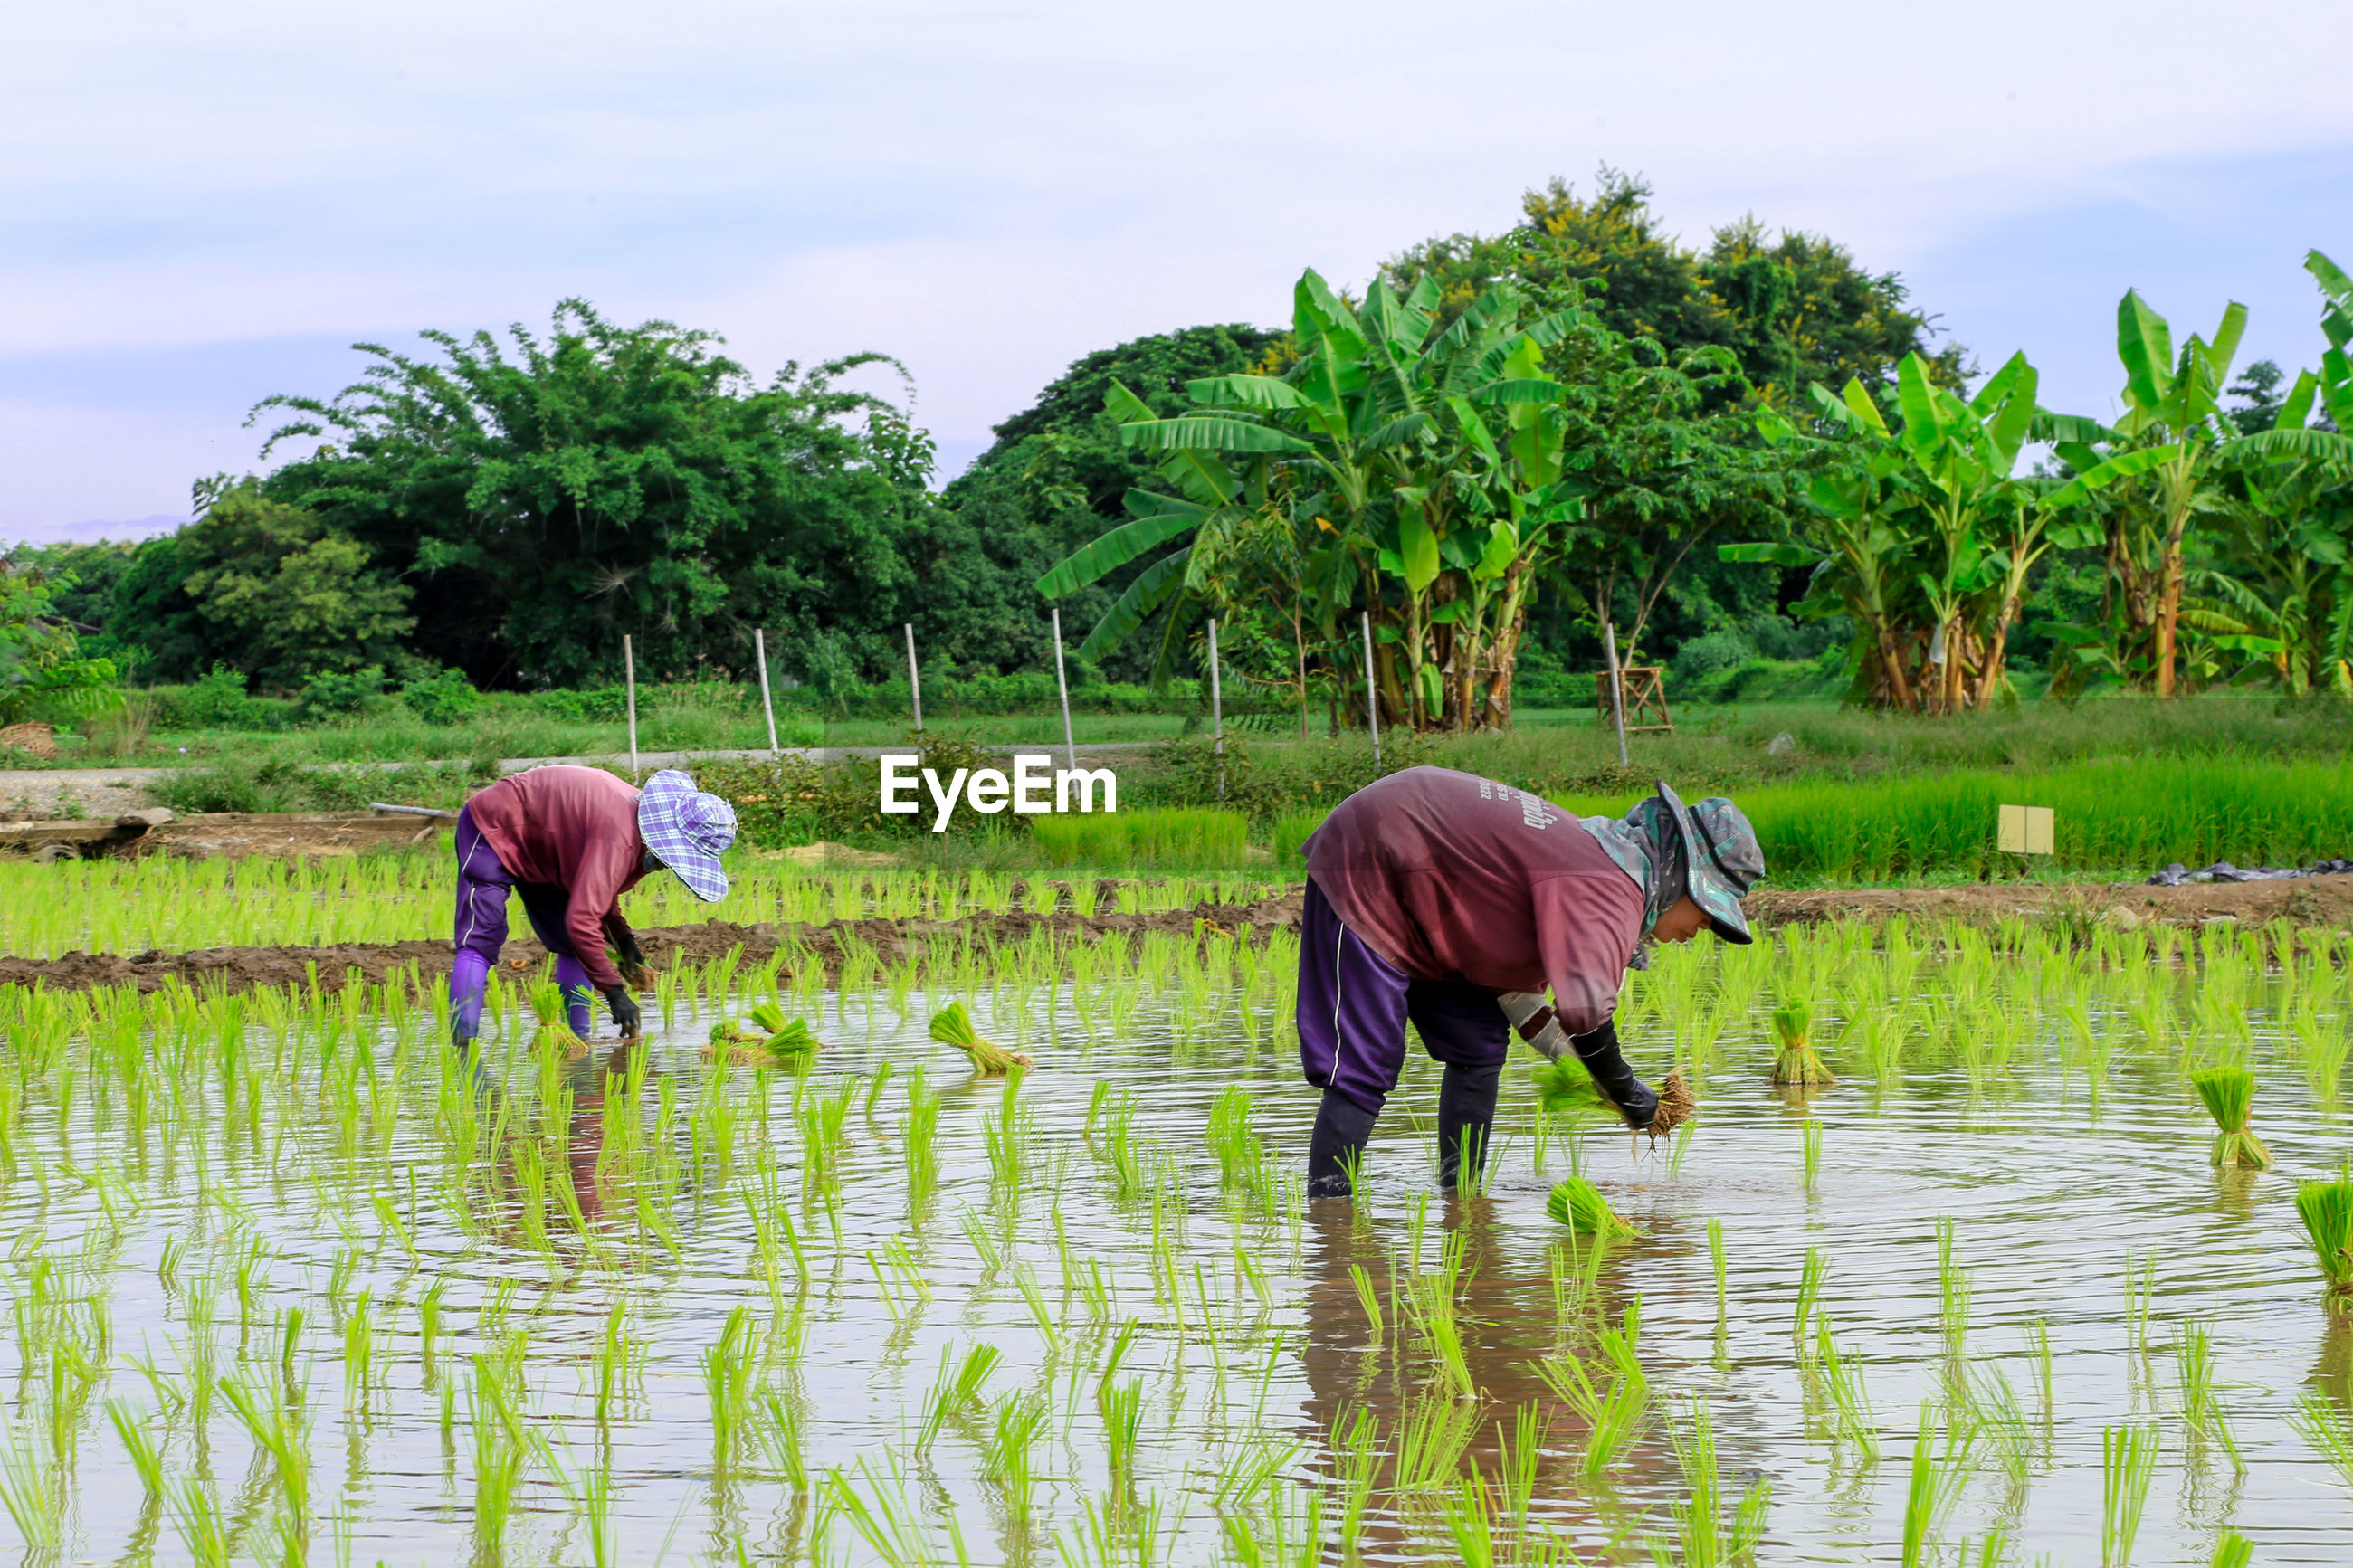 Farmers working in rice paddy